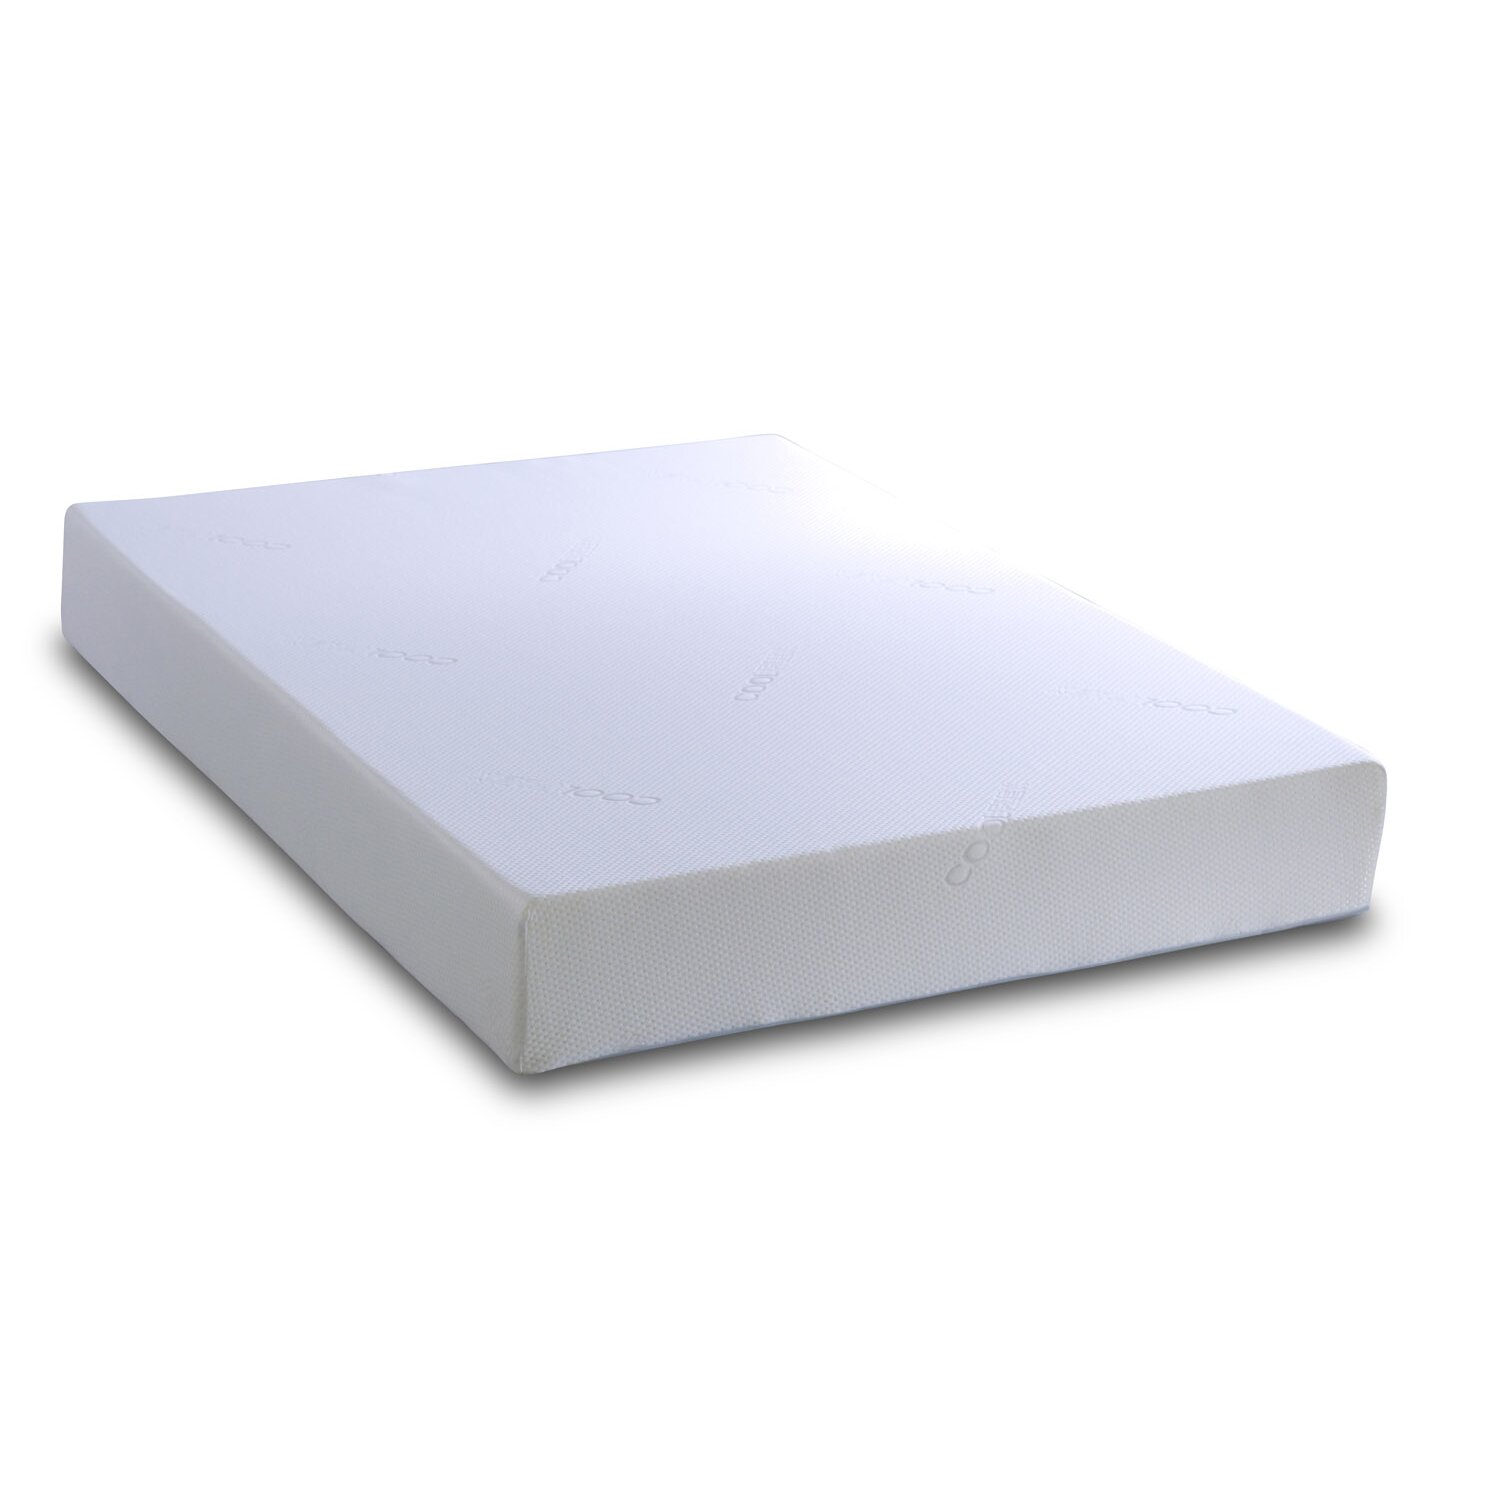 House additions 5000 memory foam mattress reviews wayfair uk Mattress sale memory foam